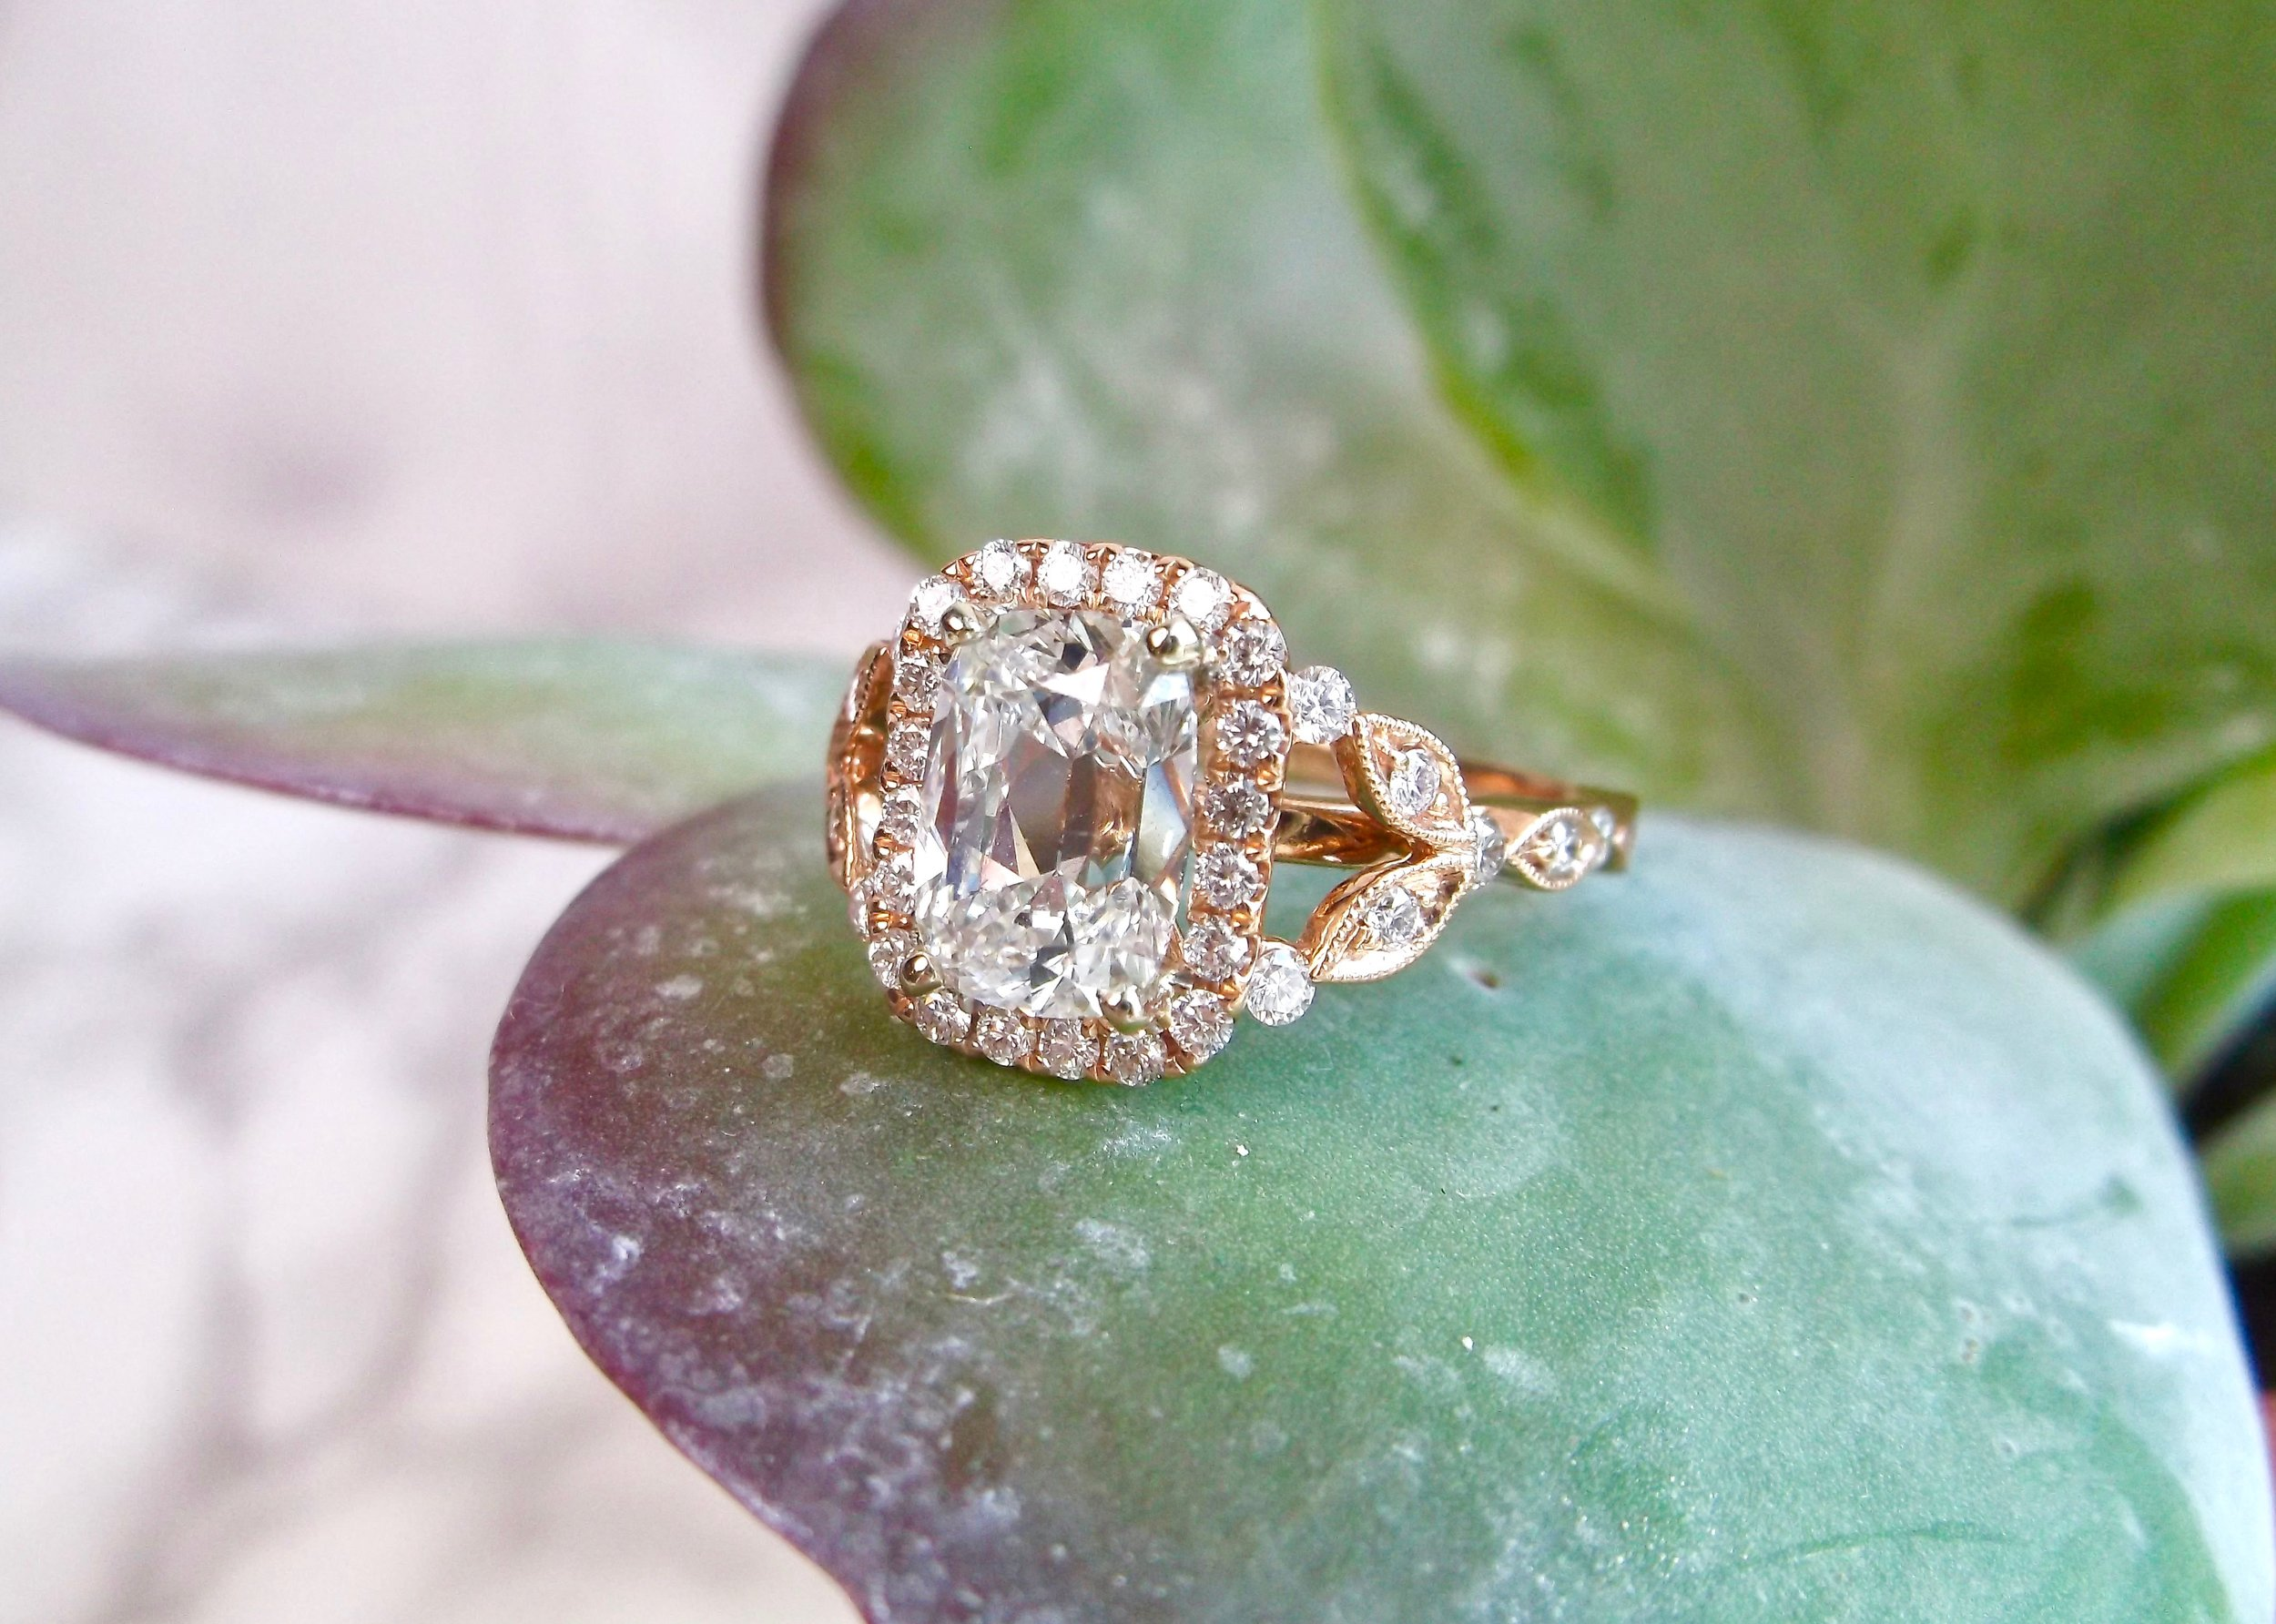 1.73 carat antique cushion cut diamond ring set in rose gold perfection. Shop this breathtaking beauty  HERE .